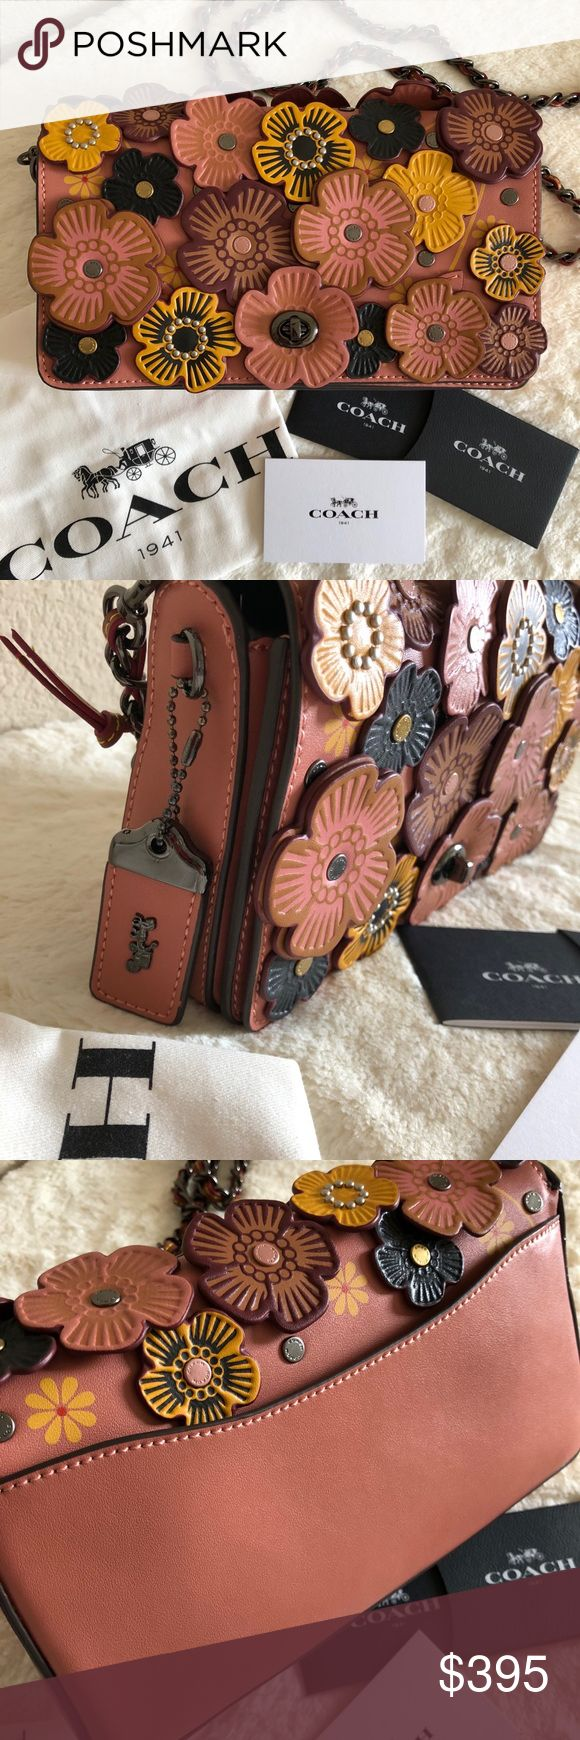 """COACH 1941 Tea Rose Appliqué Dinky Crossbody 100% Authentic. Original bought from Nordstrom last year. Barely Used, Like New, Very Clean Outside And Inside. Comes with dust bag and card care  Retail: 595  PRODUCT DETAILS Crafted in modern glovetanned cowhide, it has a chain strap woven through with a slender ribbon of leather. Turnlock closure, leather lining Inside open and French purse pockets Outside slip pocket Strap with 22"""" drop for shoulder or crossbody wear 9""""W x 2.25""""D x 5.5""""H…"""